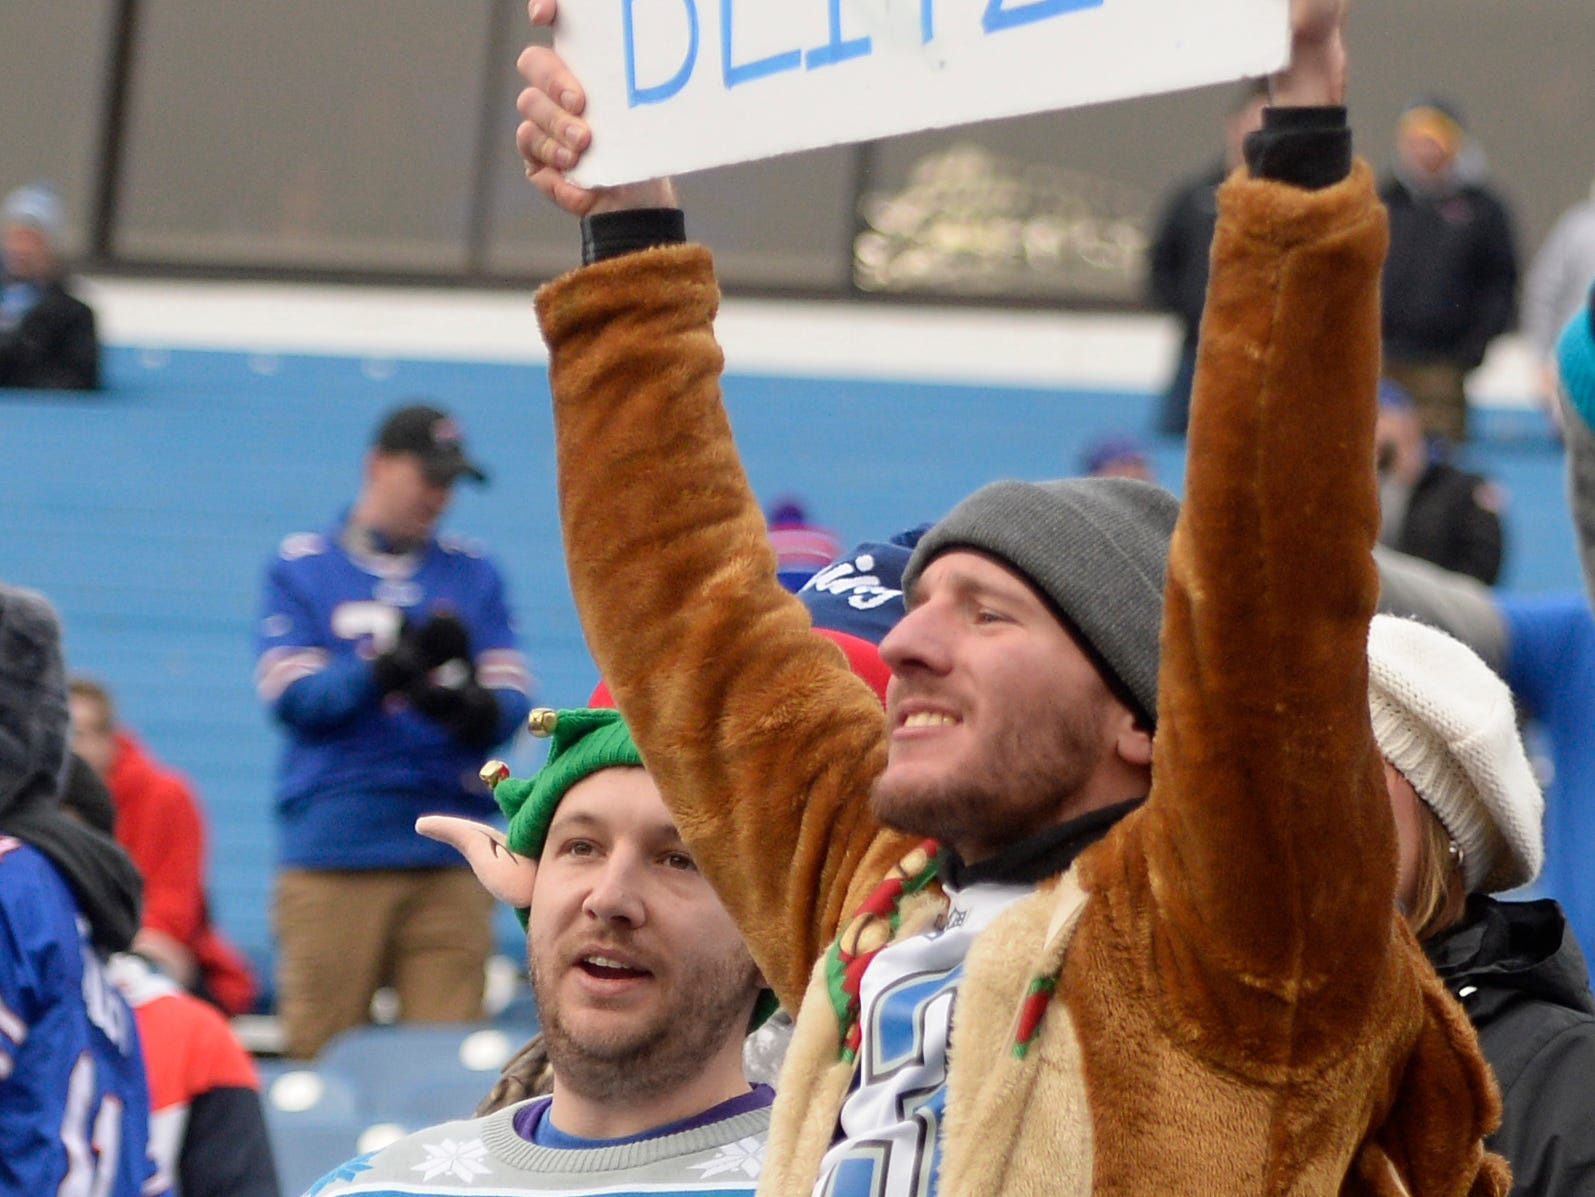 A Detroit Lions fan holds up a sign before an NFL football game between the Buffalo Bills and the Detroit Lions.